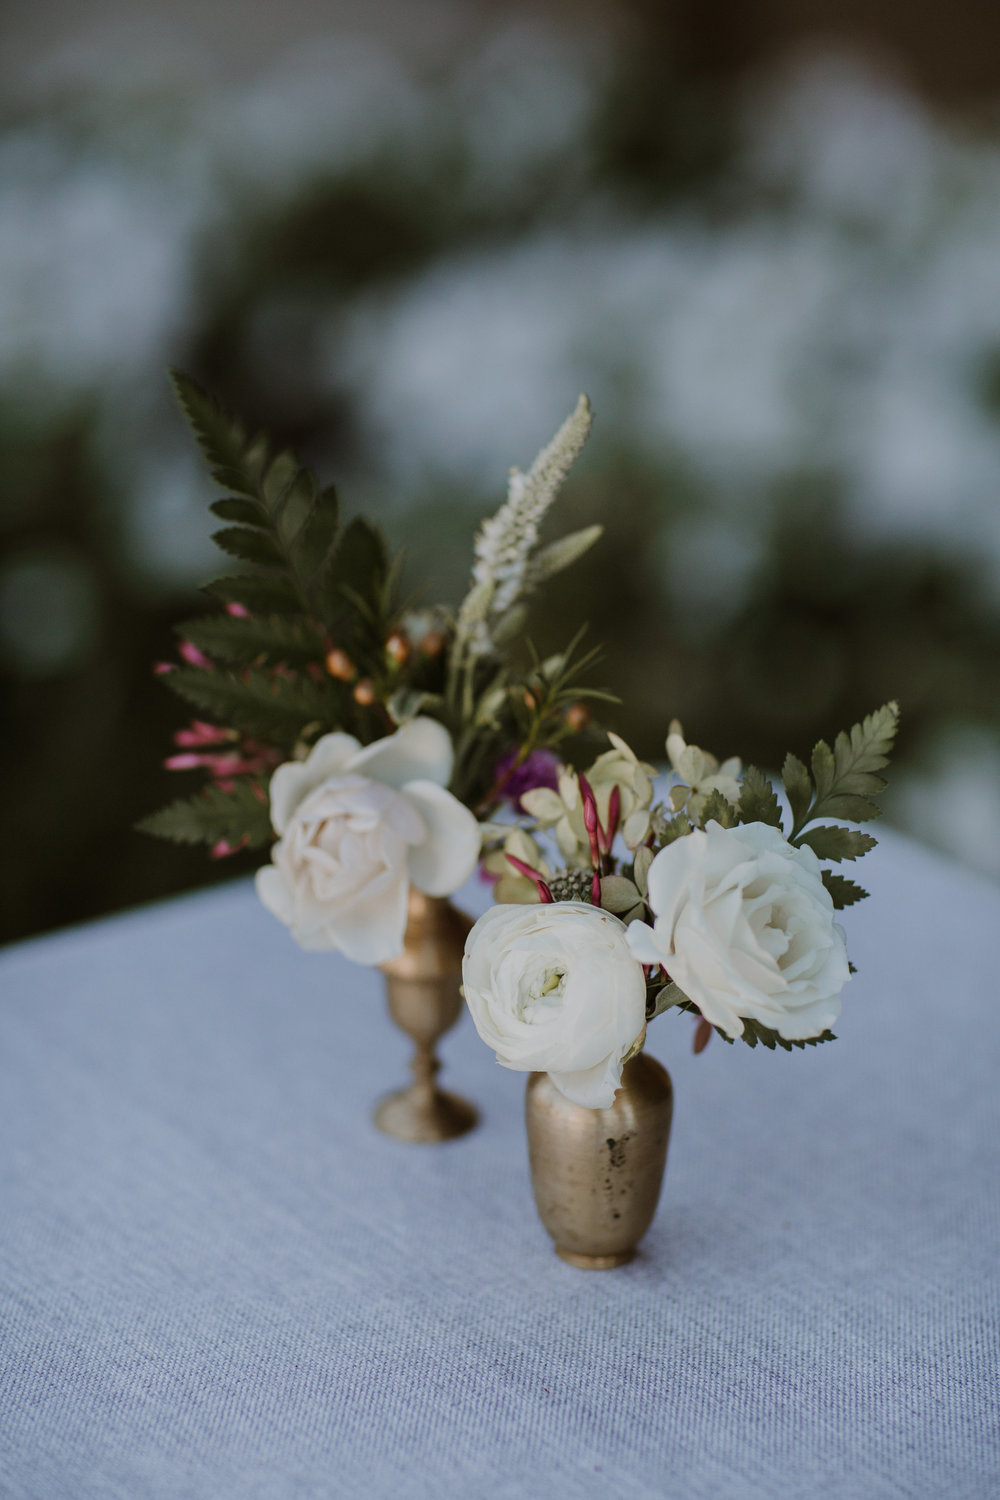 Romantic Healdsburg wedding flowers by Venn Floral, photographed by Gretchen Gause Photography.